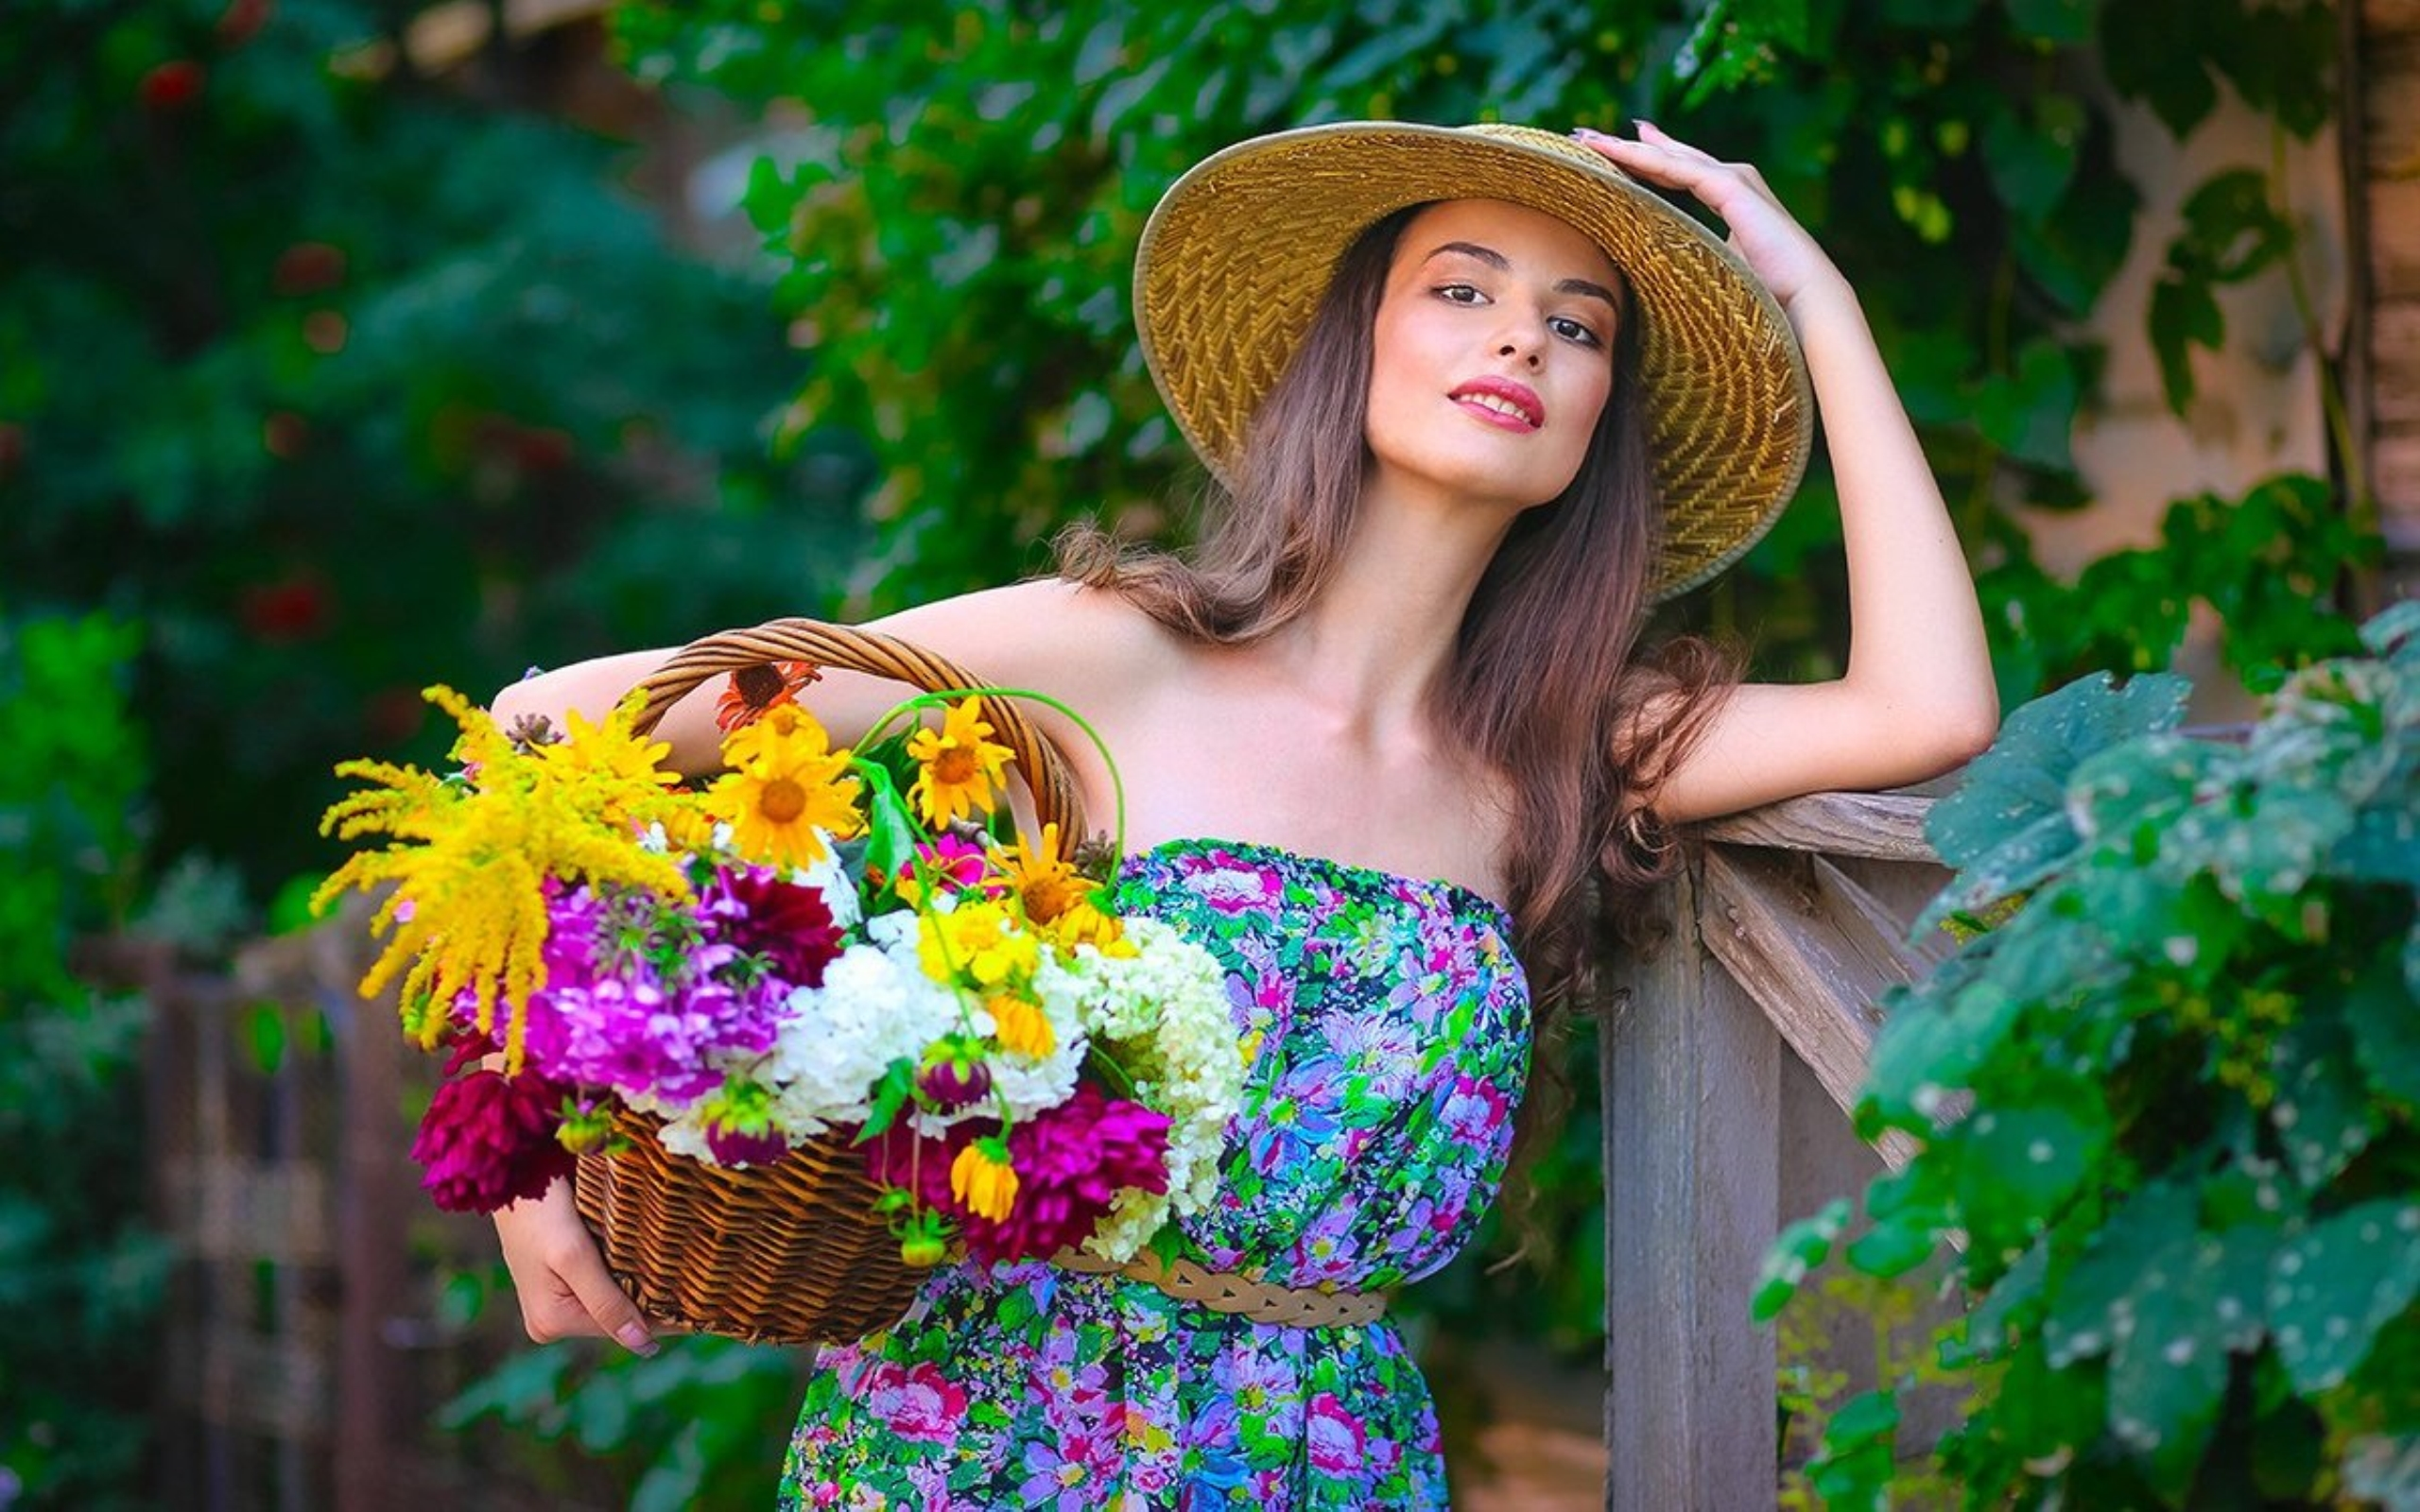 Free Photo Girl With Flowers - Human, Lady, Pose - Free -4147